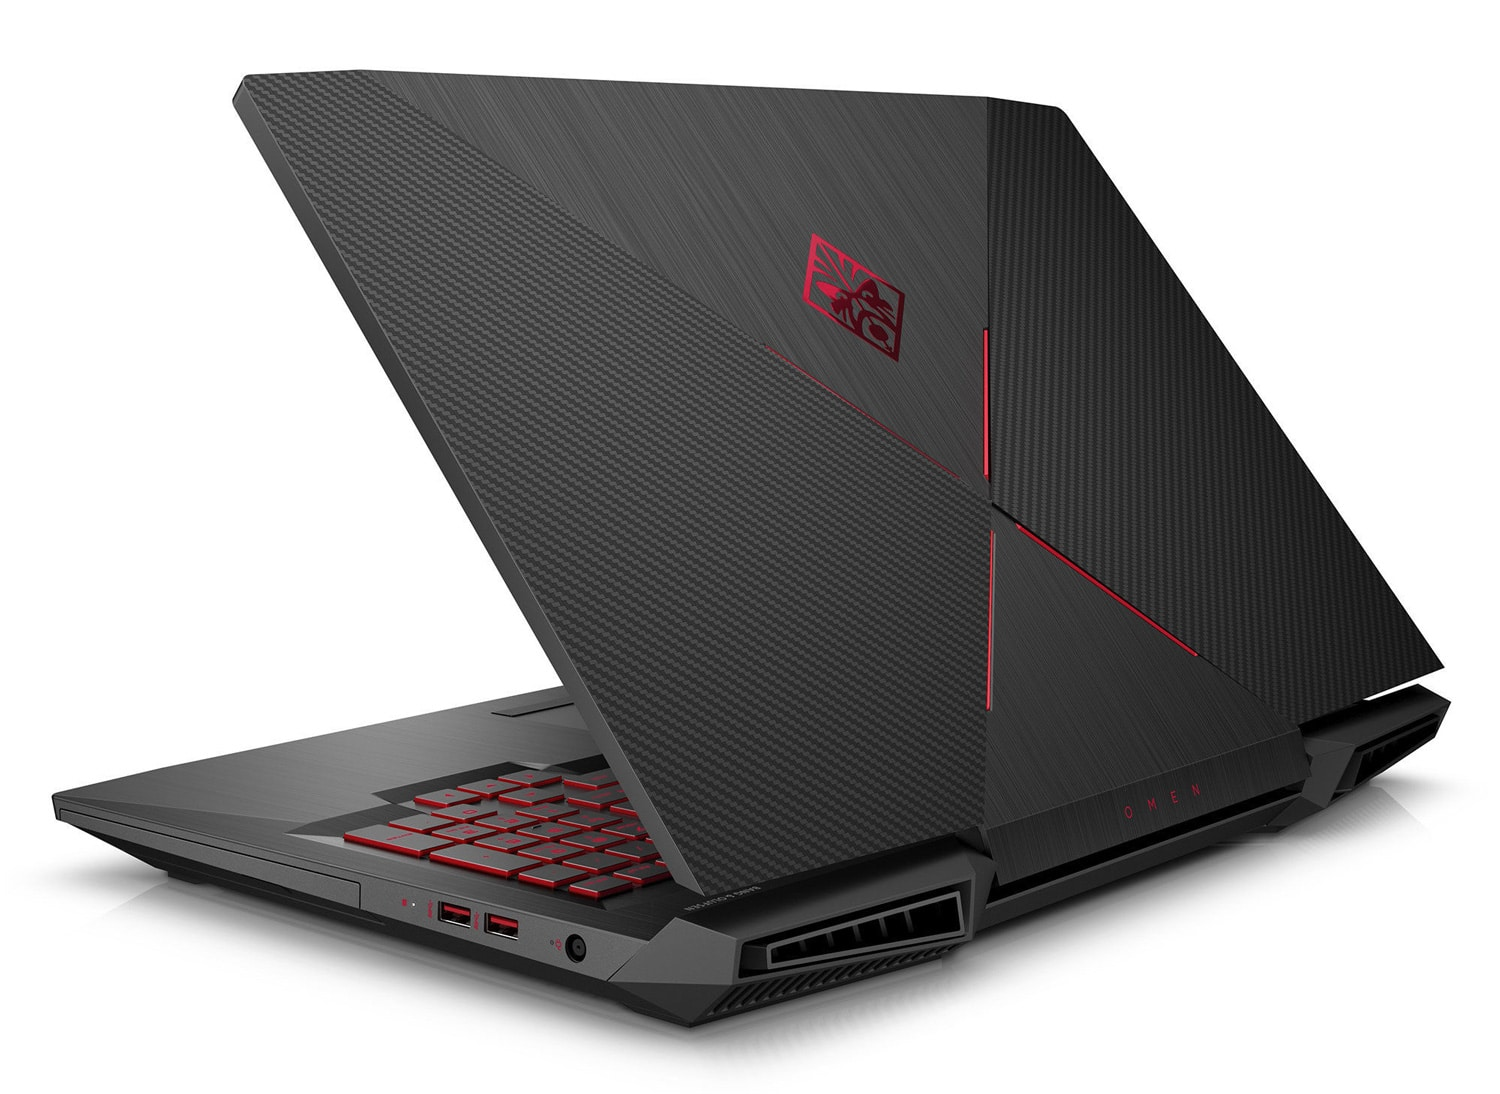 "HP Omen 17-an131nf, PC portable 17"" IPS 120Hz GTX 1060 Quad SSD 1199€"